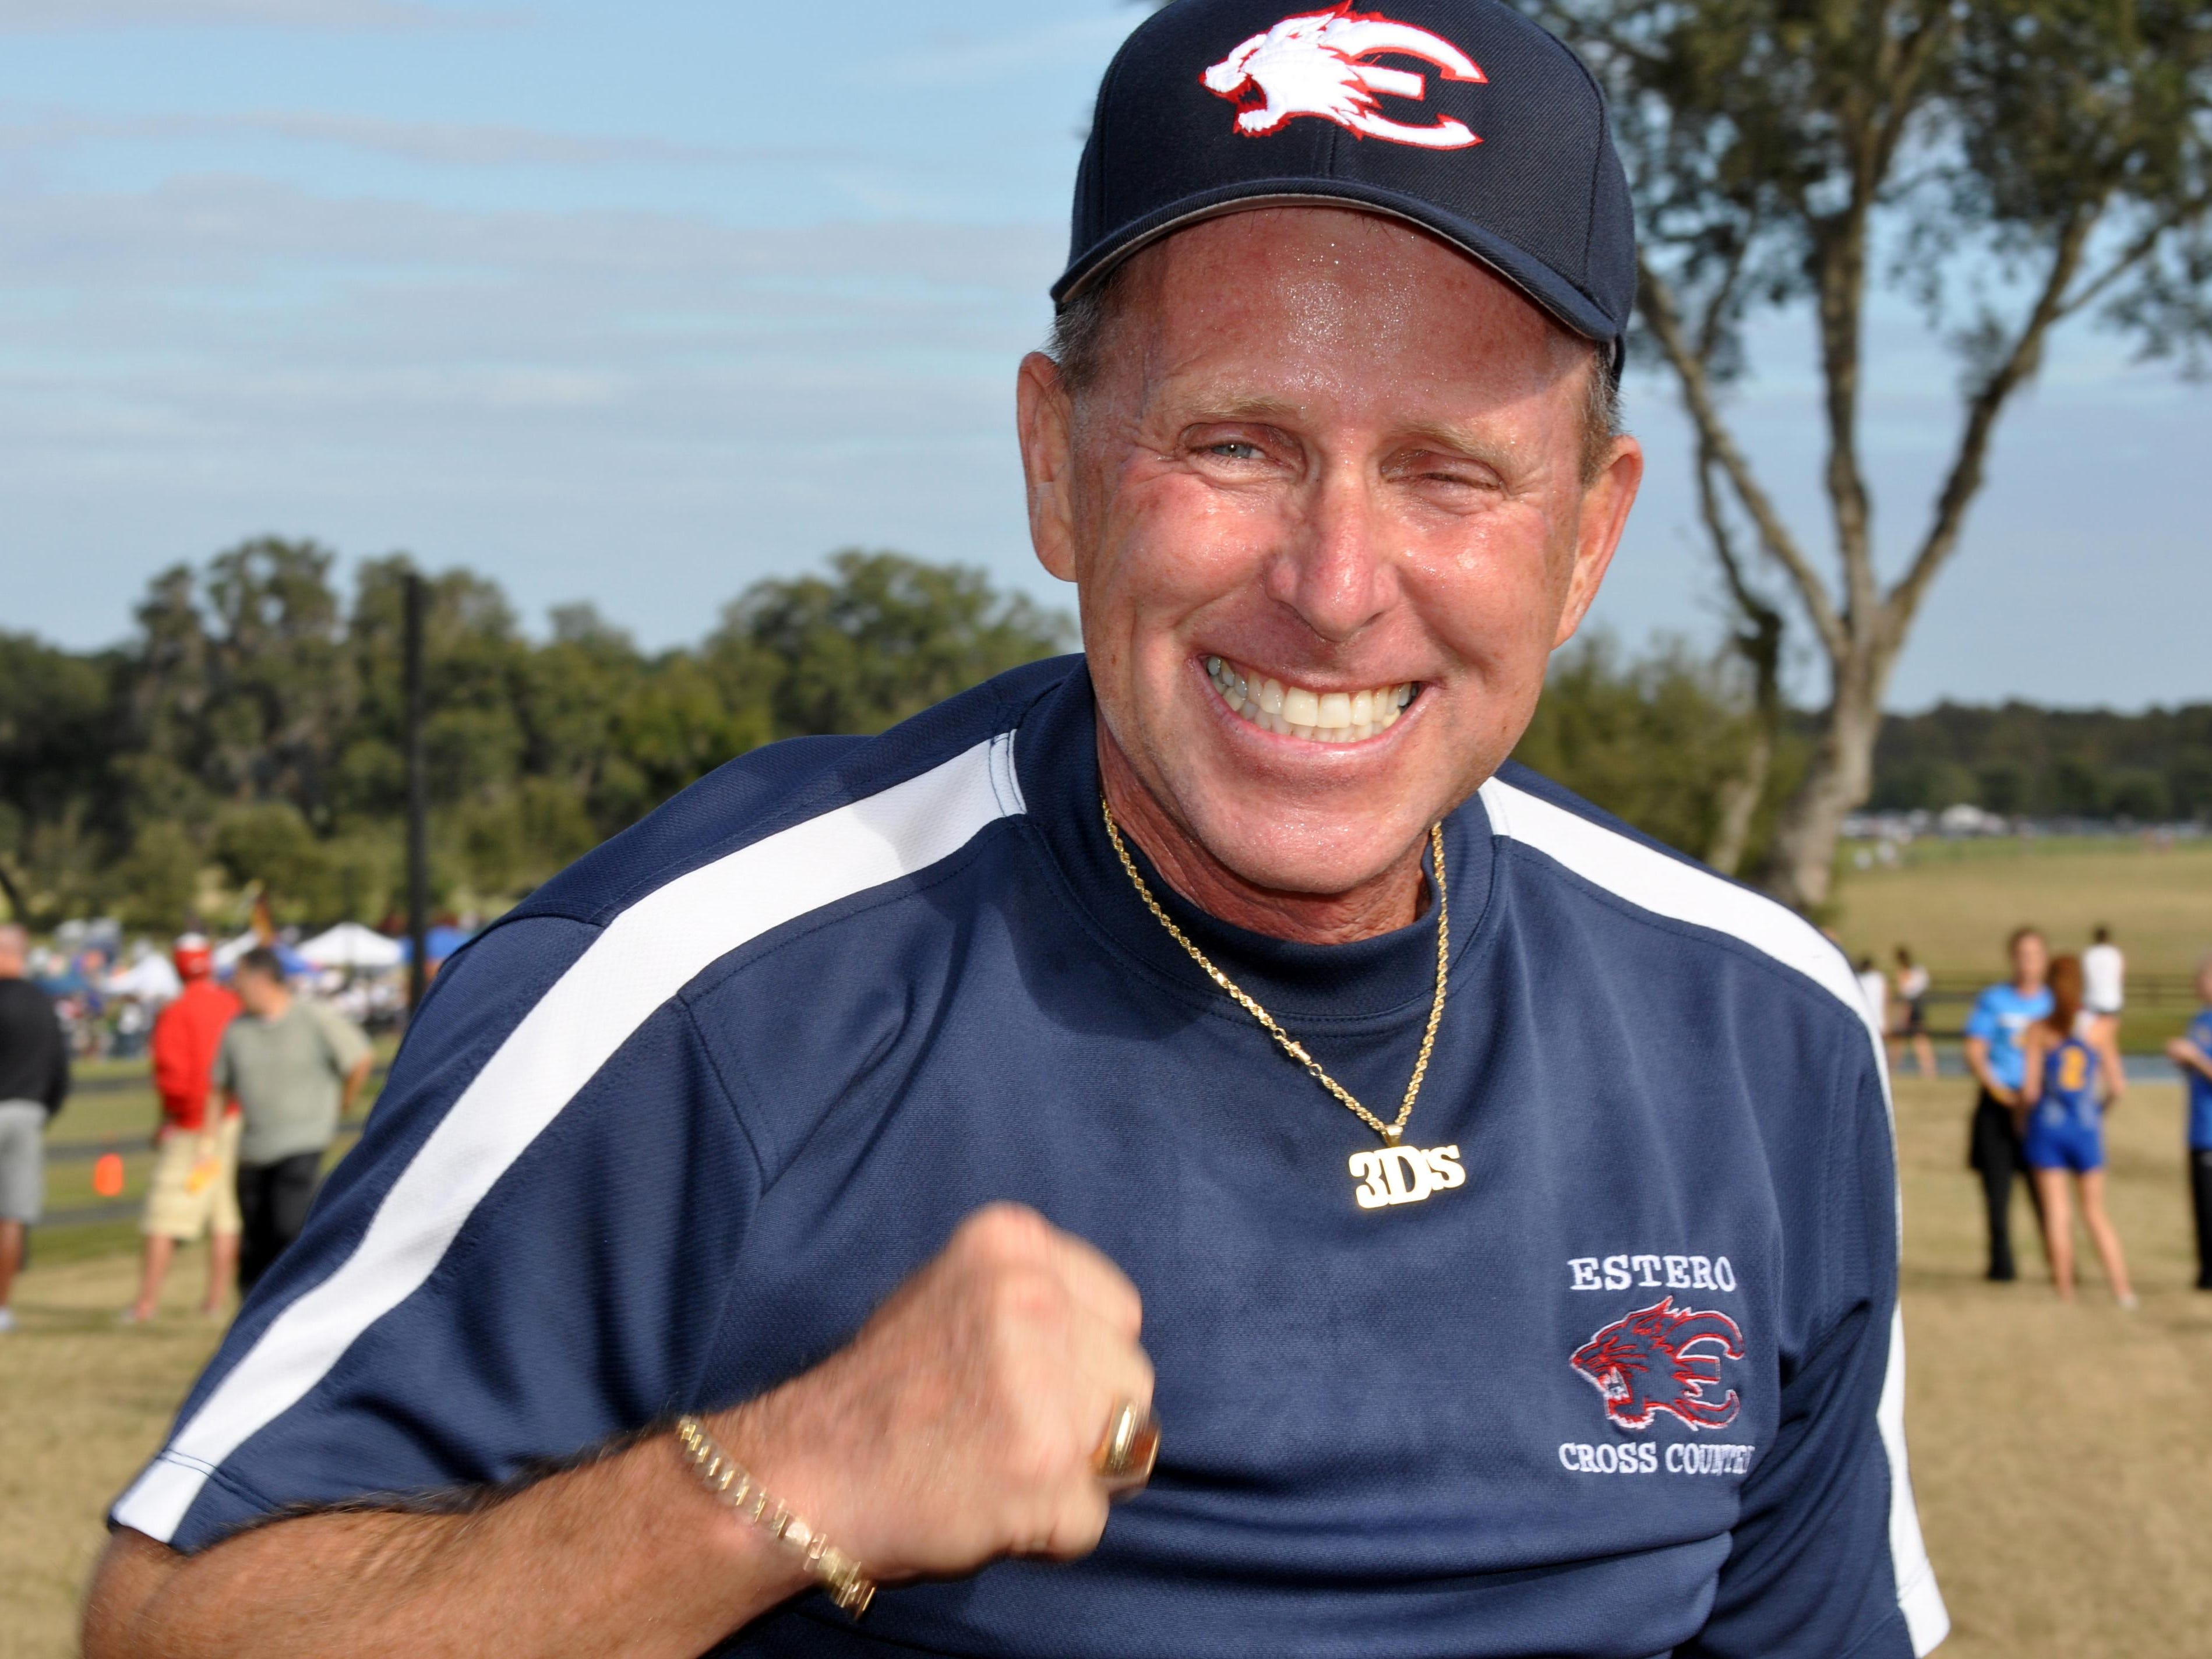 Late Estero cross country coach Jeff Sommer was voted into the FACA Hall of Fame.